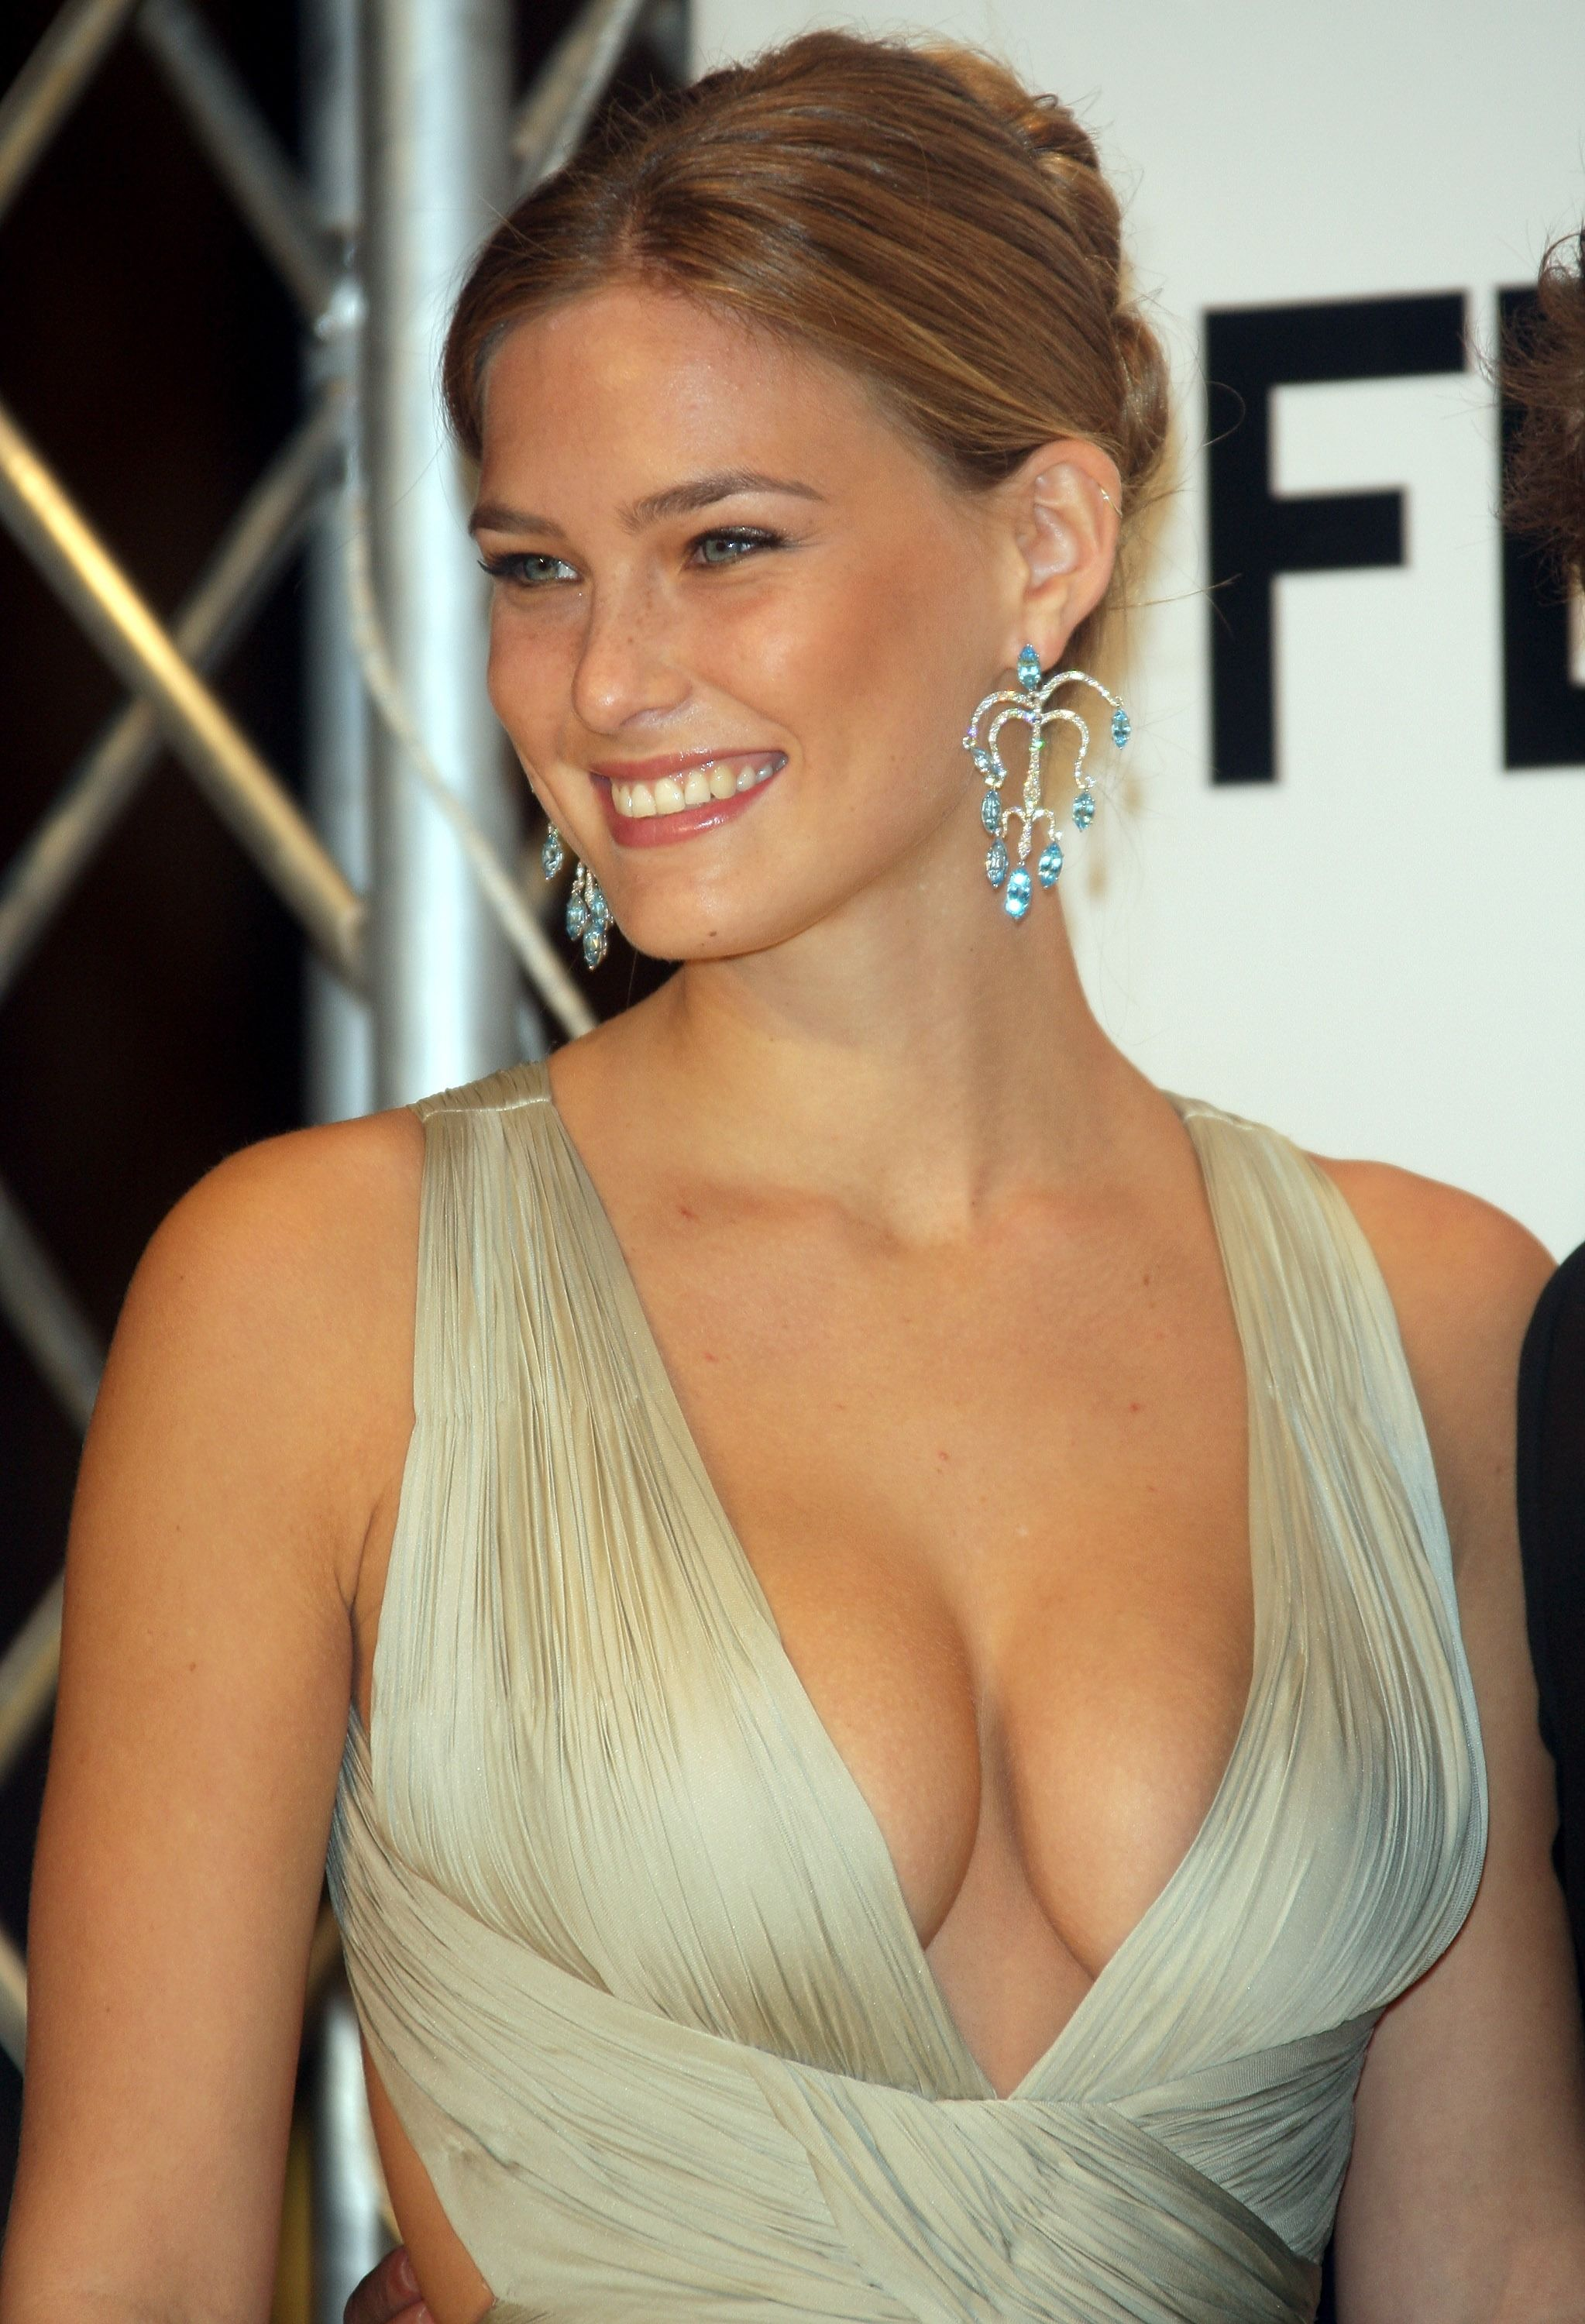 Snapchat Bar Refaeli nudes (69 photos), Tits, Cleavage, Twitter, swimsuit 2018